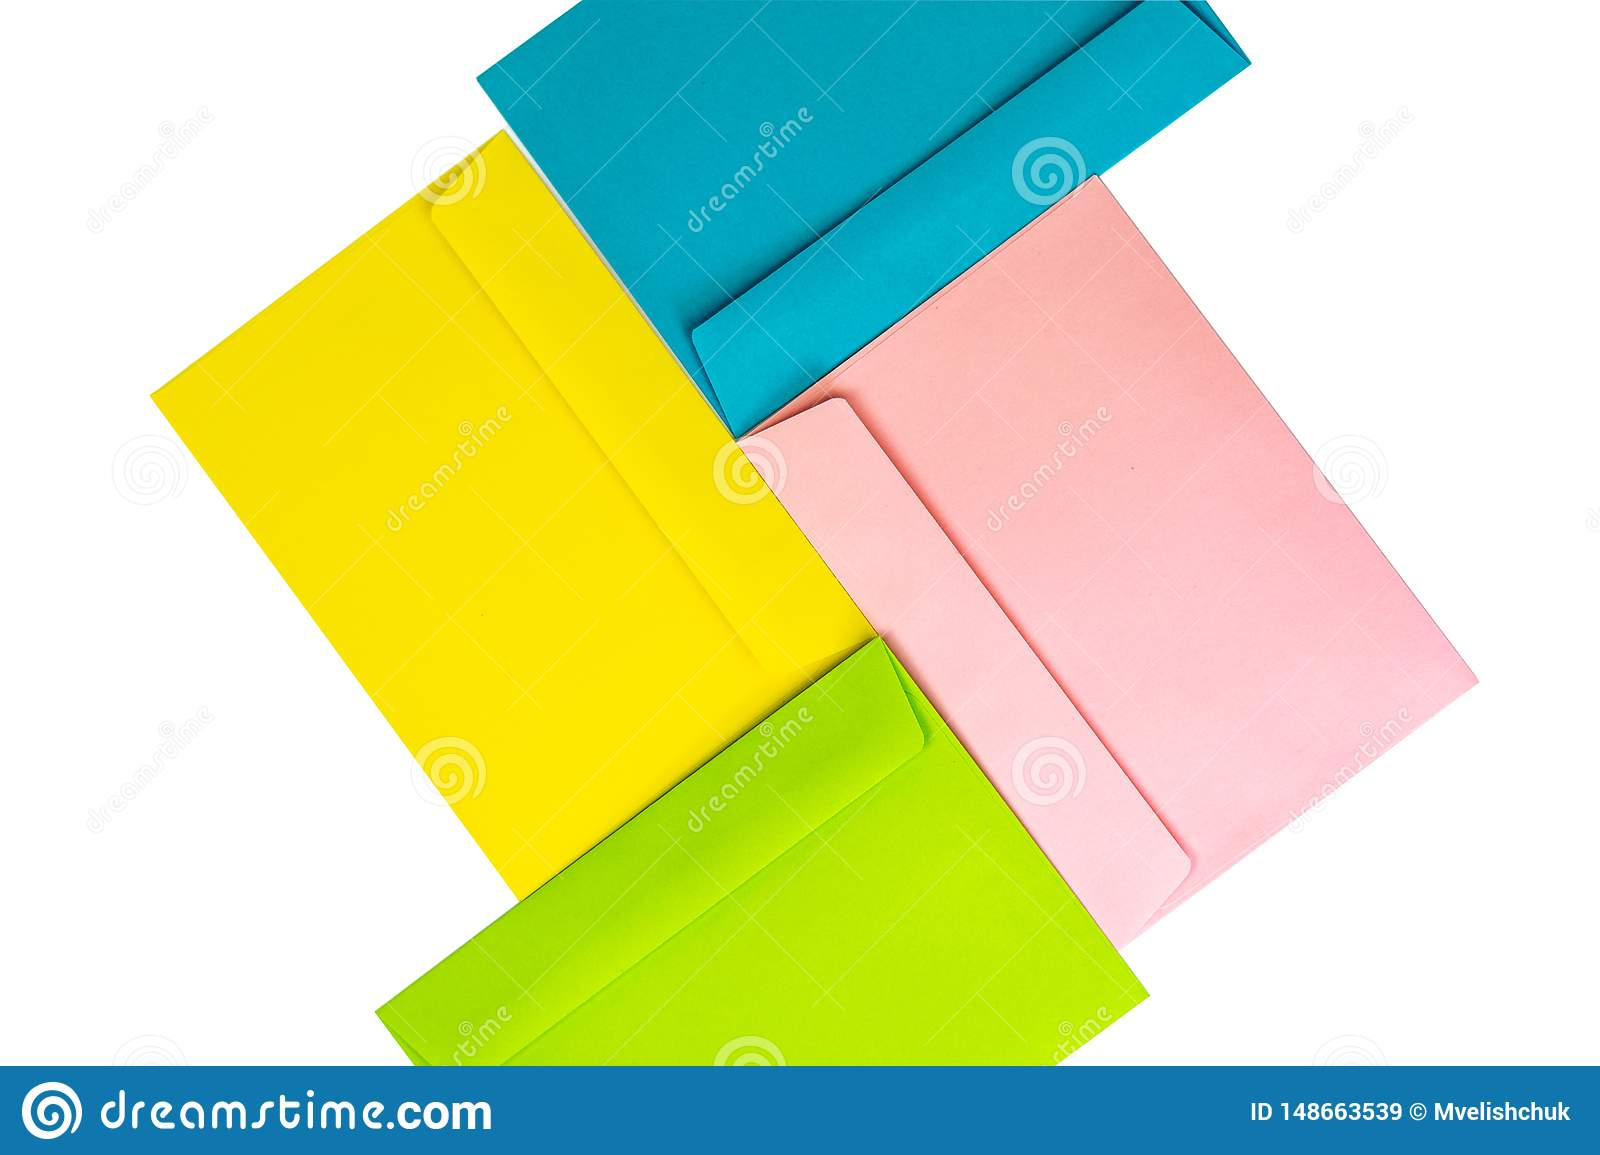 Different colored envelopes on the table. Multi colored envelopes and letters